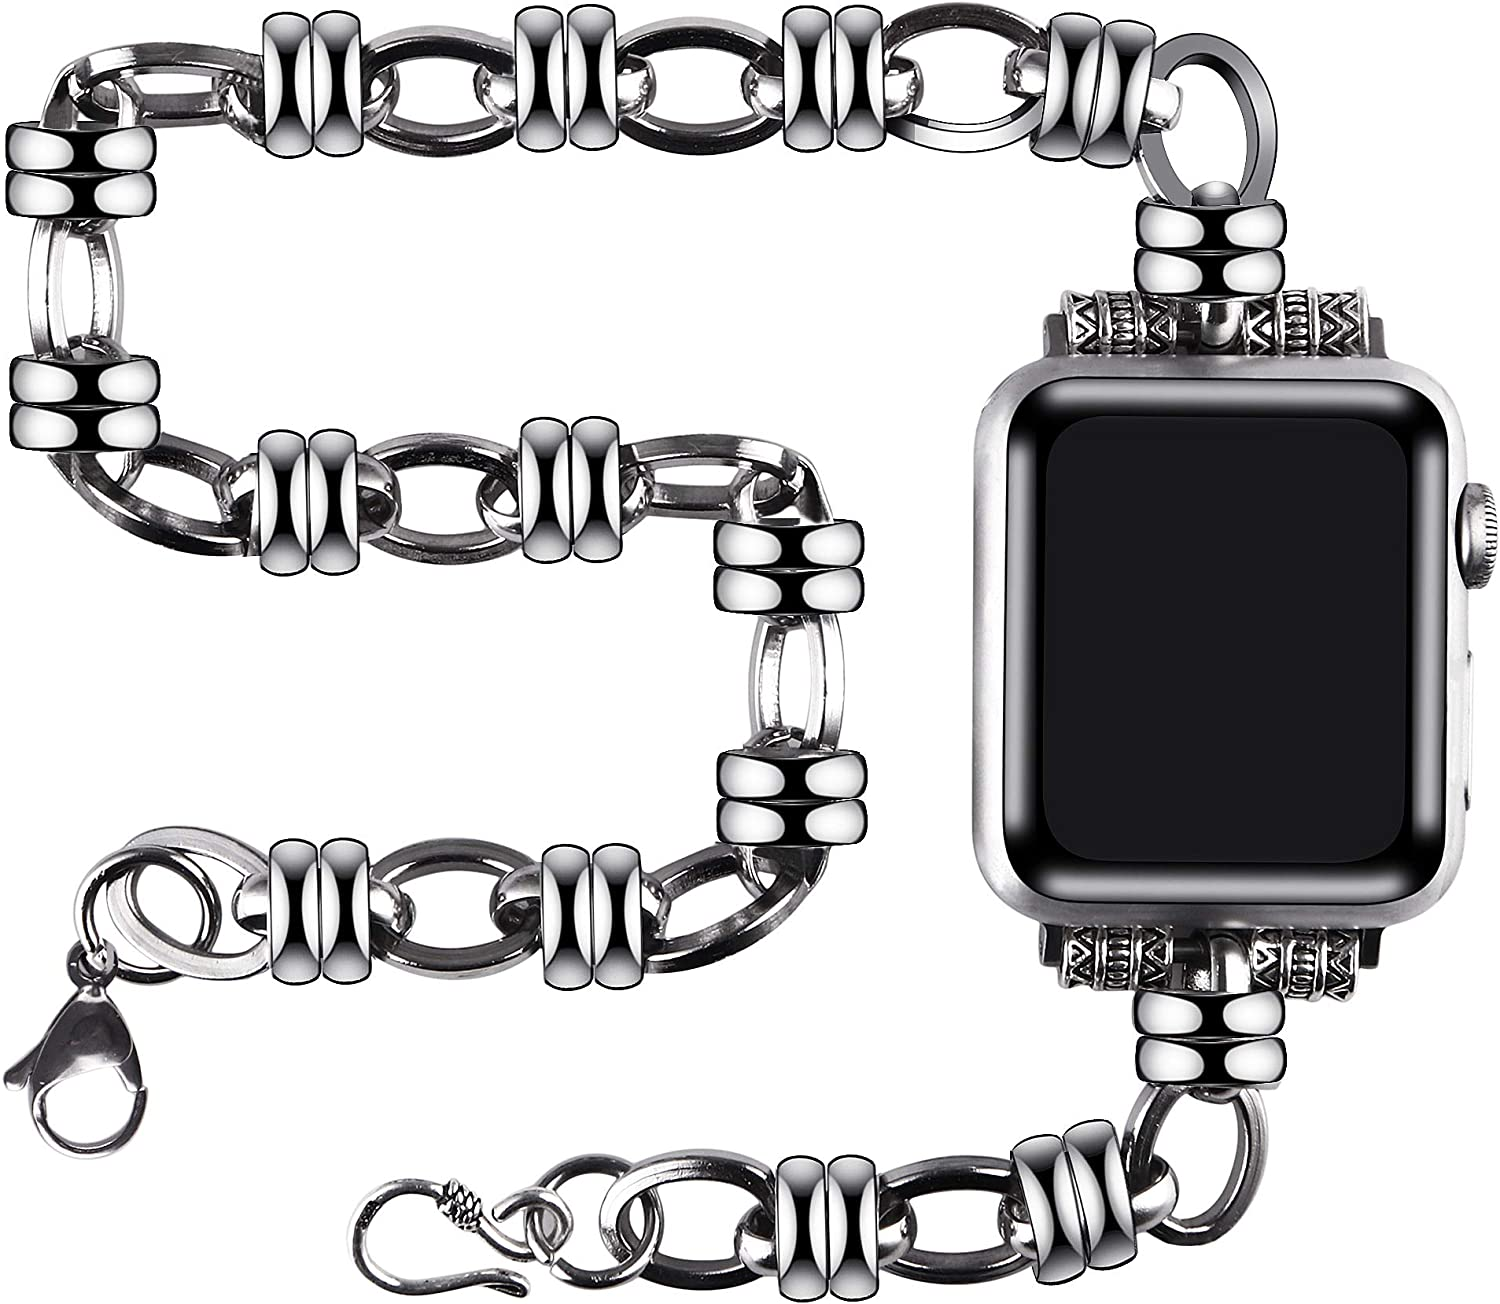 vikoros Stainless Steel Double Tour Bands Compatible with Apple Watch 38mm 40mm 42mm 44mm iWatch SE Series 6 5 4 3 2 1 for Women Mens, Metal Jewelry Dressy Chain Replacement Wristband Strap